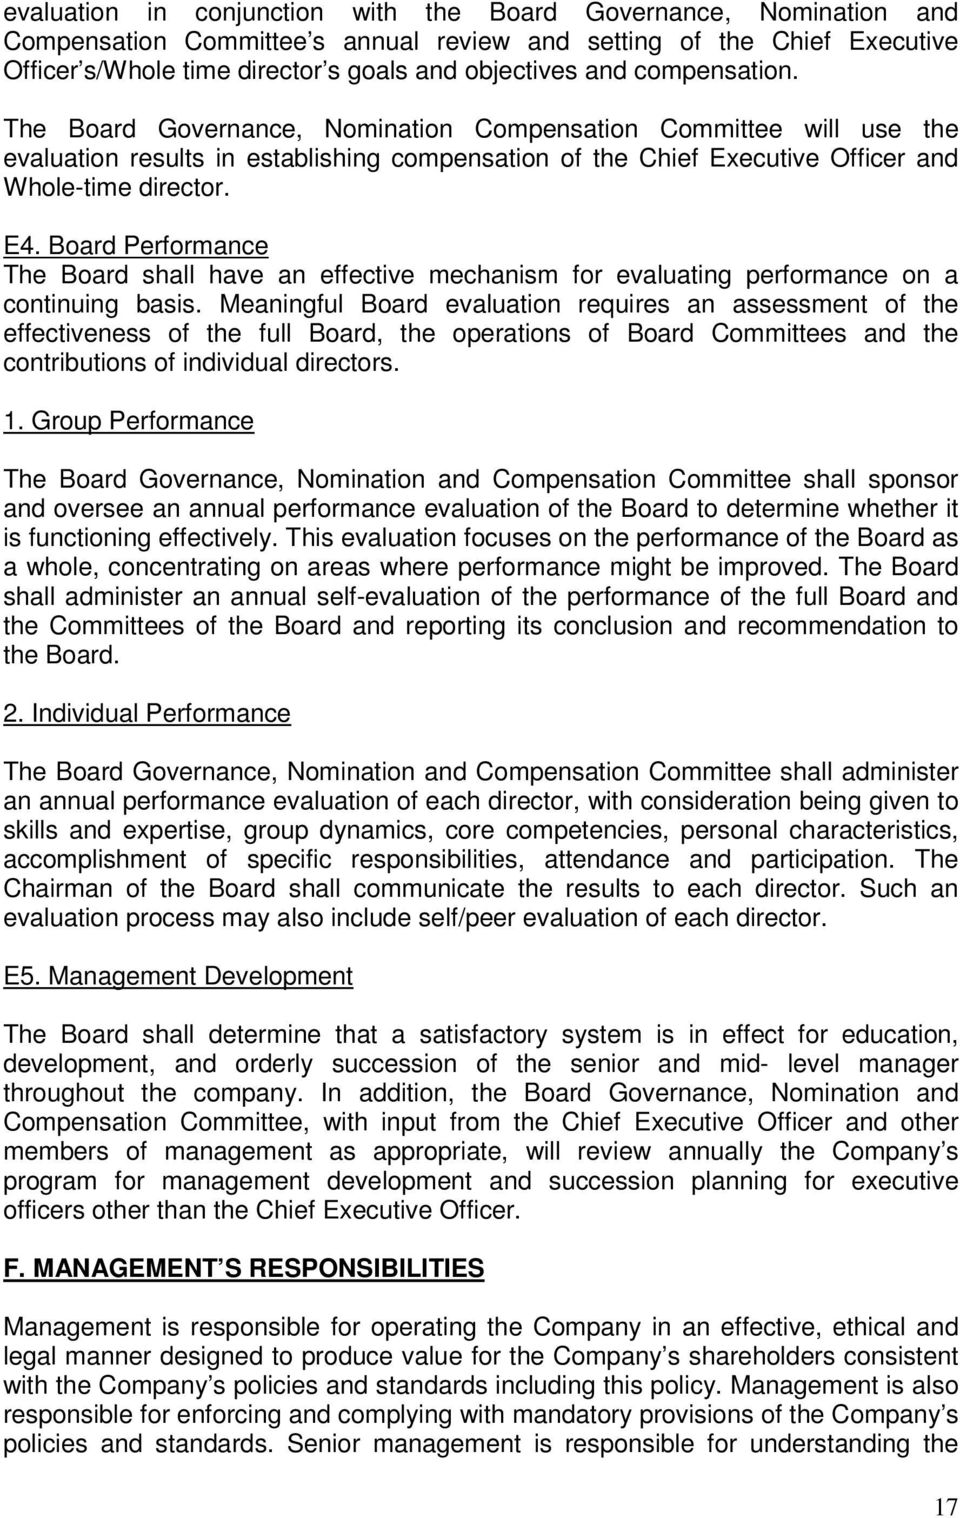 Board Performance The Board shall have an effective mechanism for evaluating performance on a continuing basis.